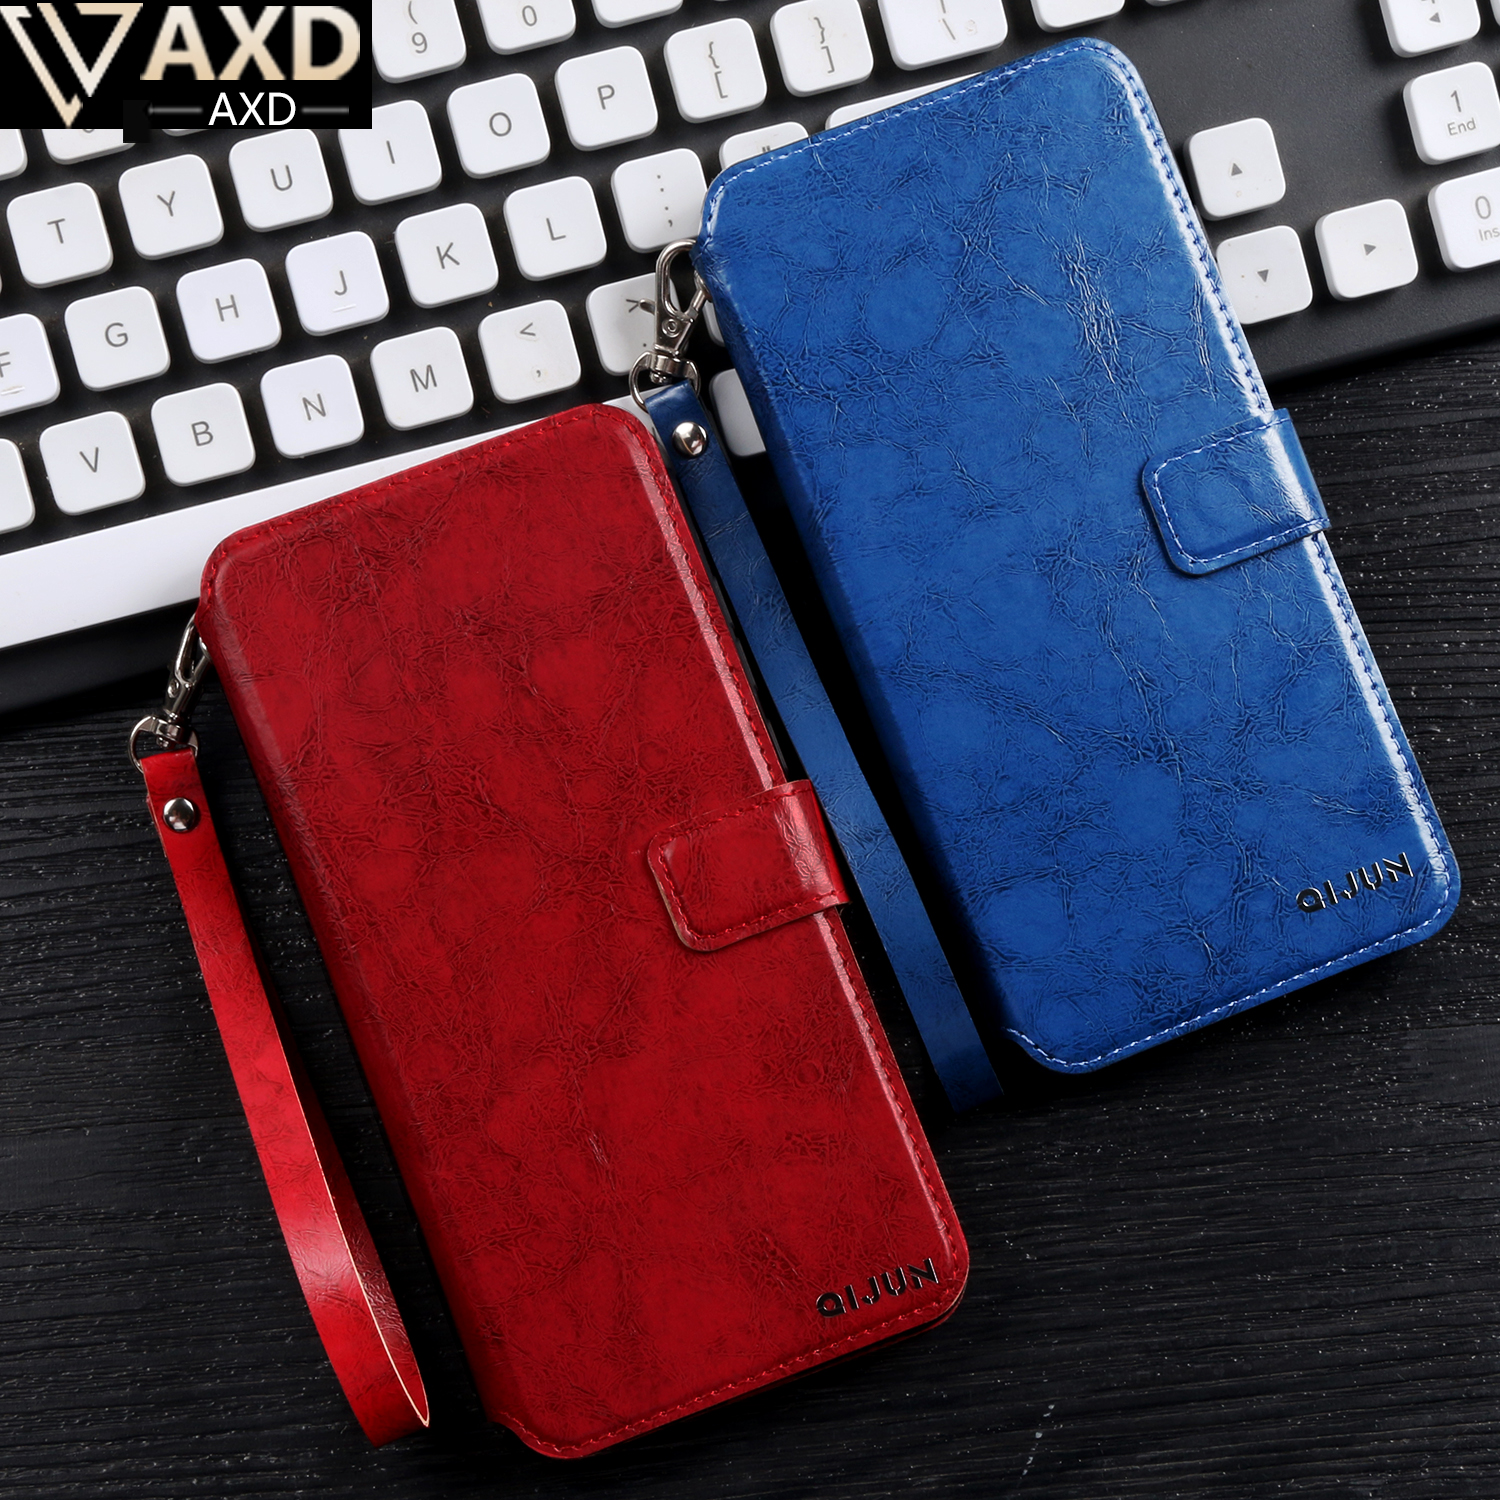 Qualified Usa Oil Soft Red Complex Double-headed Eagle Pu Leather Passport Holder Built In Rfid Blocking Protect Personal Information 2019 New Fashion Style Online Card & Id Holders Back To Search Resultsluggage & Bags